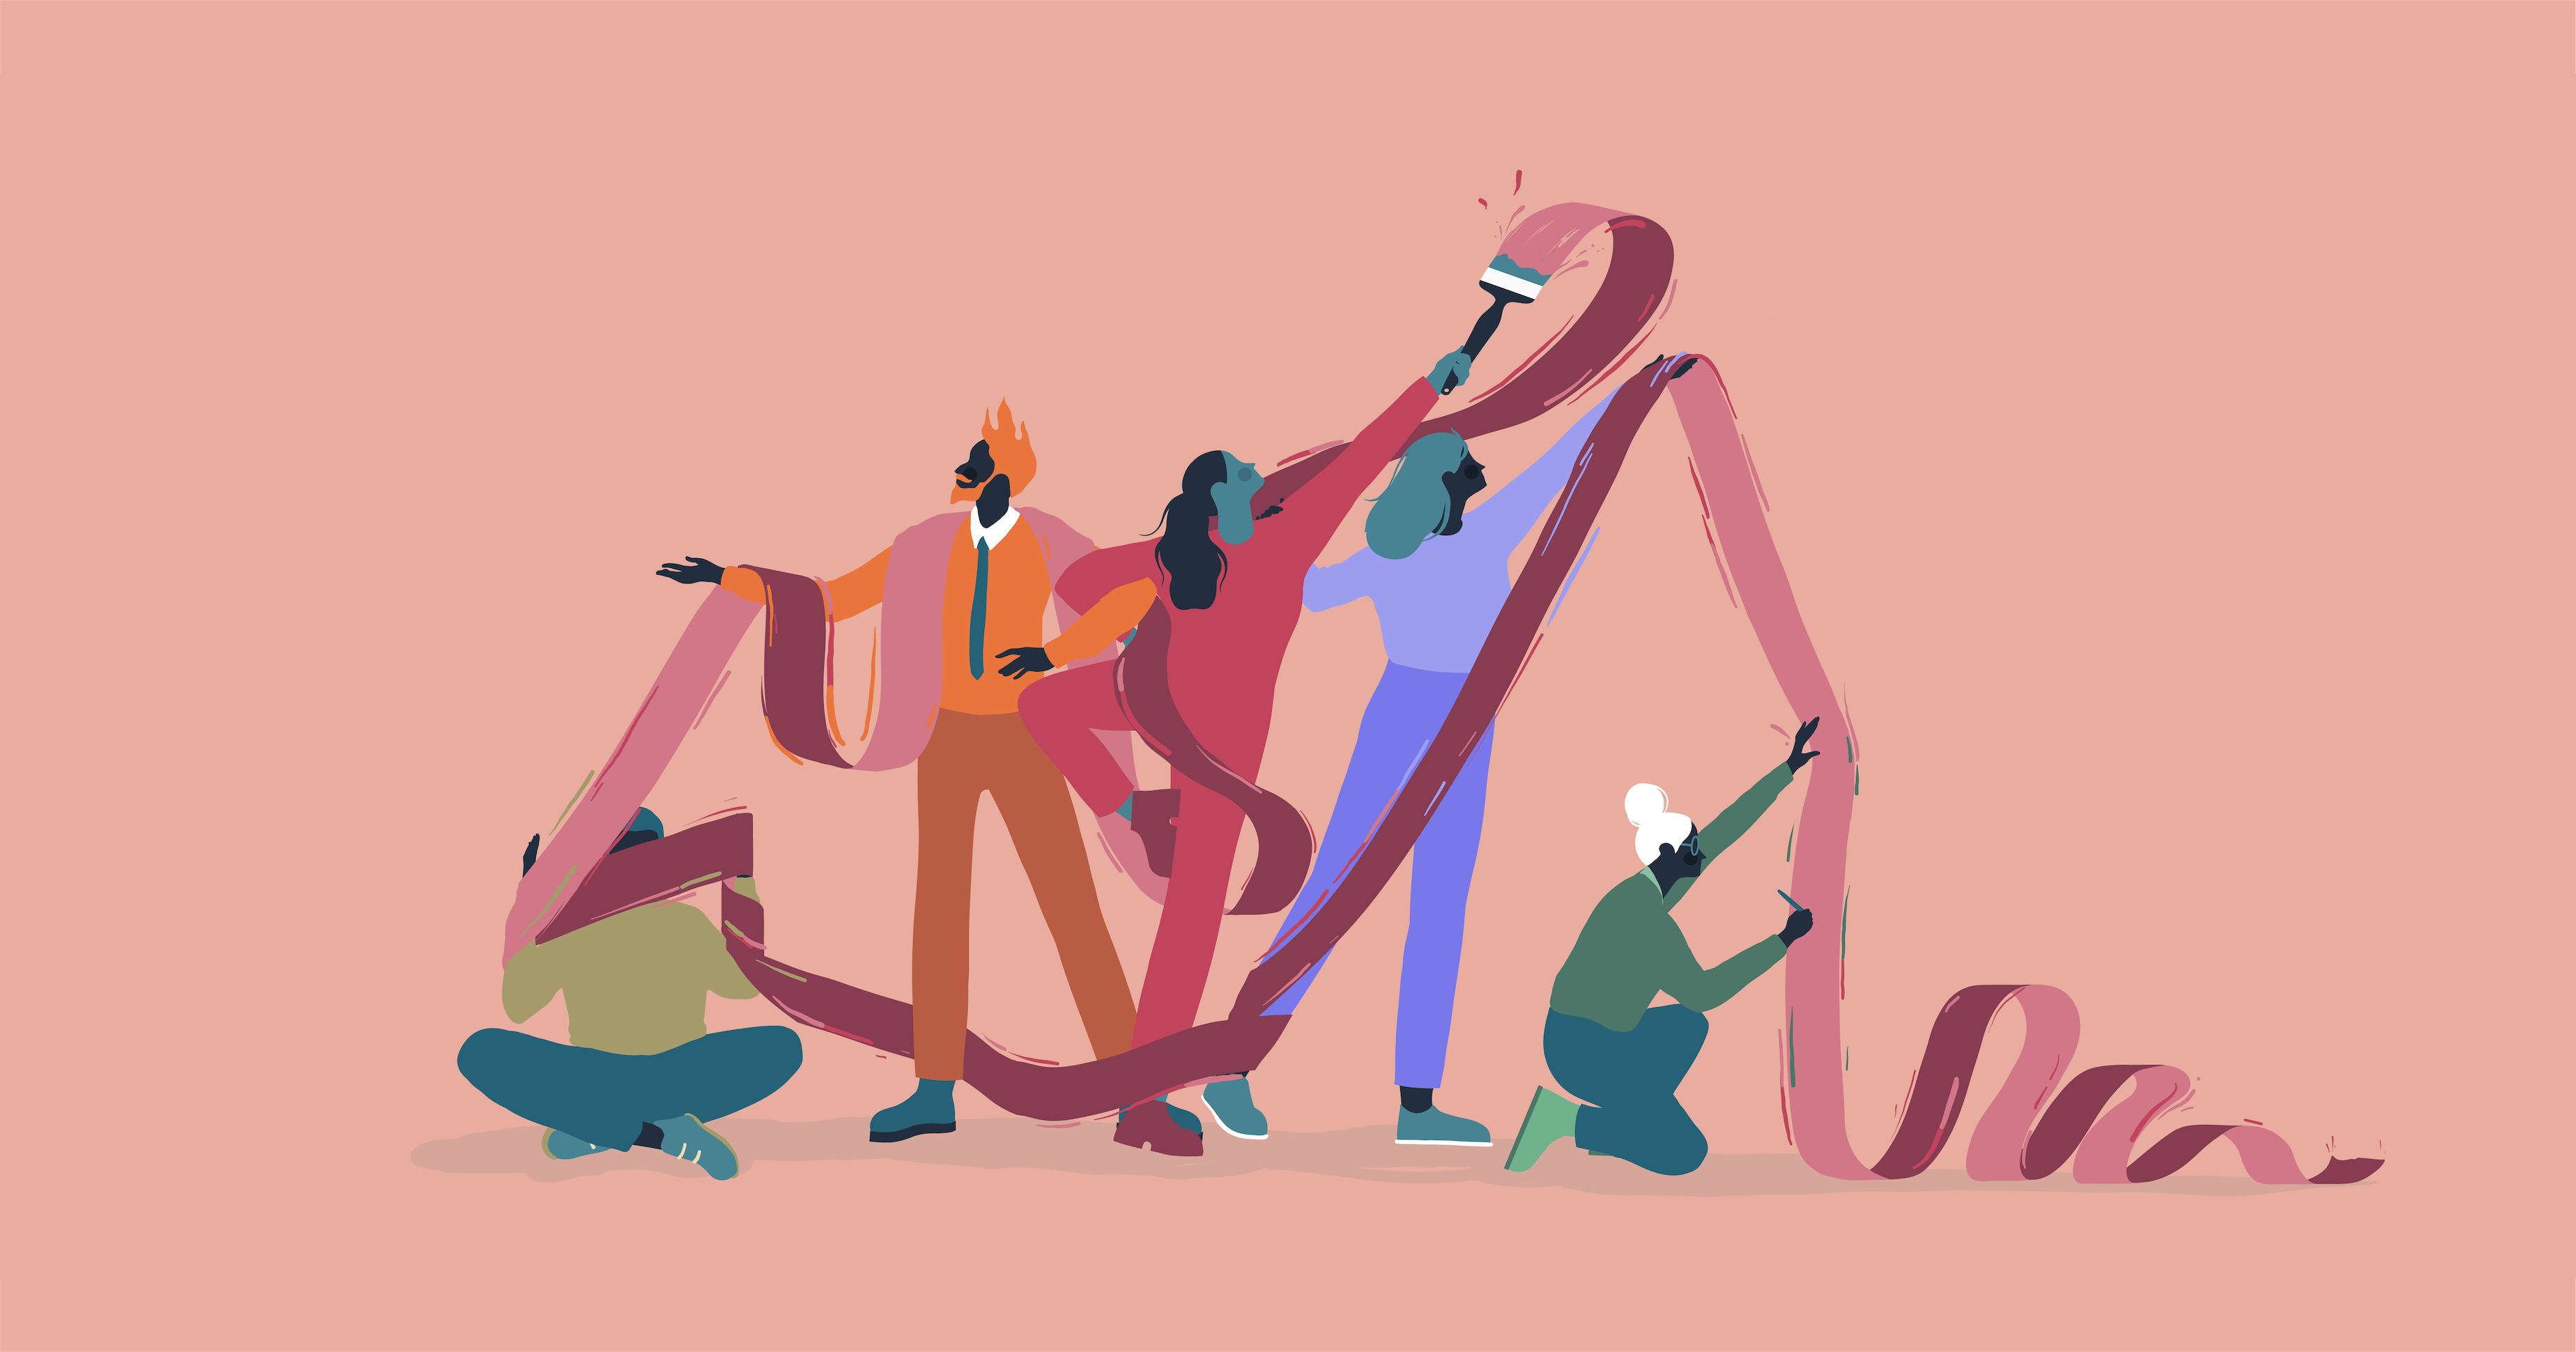 Illustration of a group of people unraveling a giant ribbon